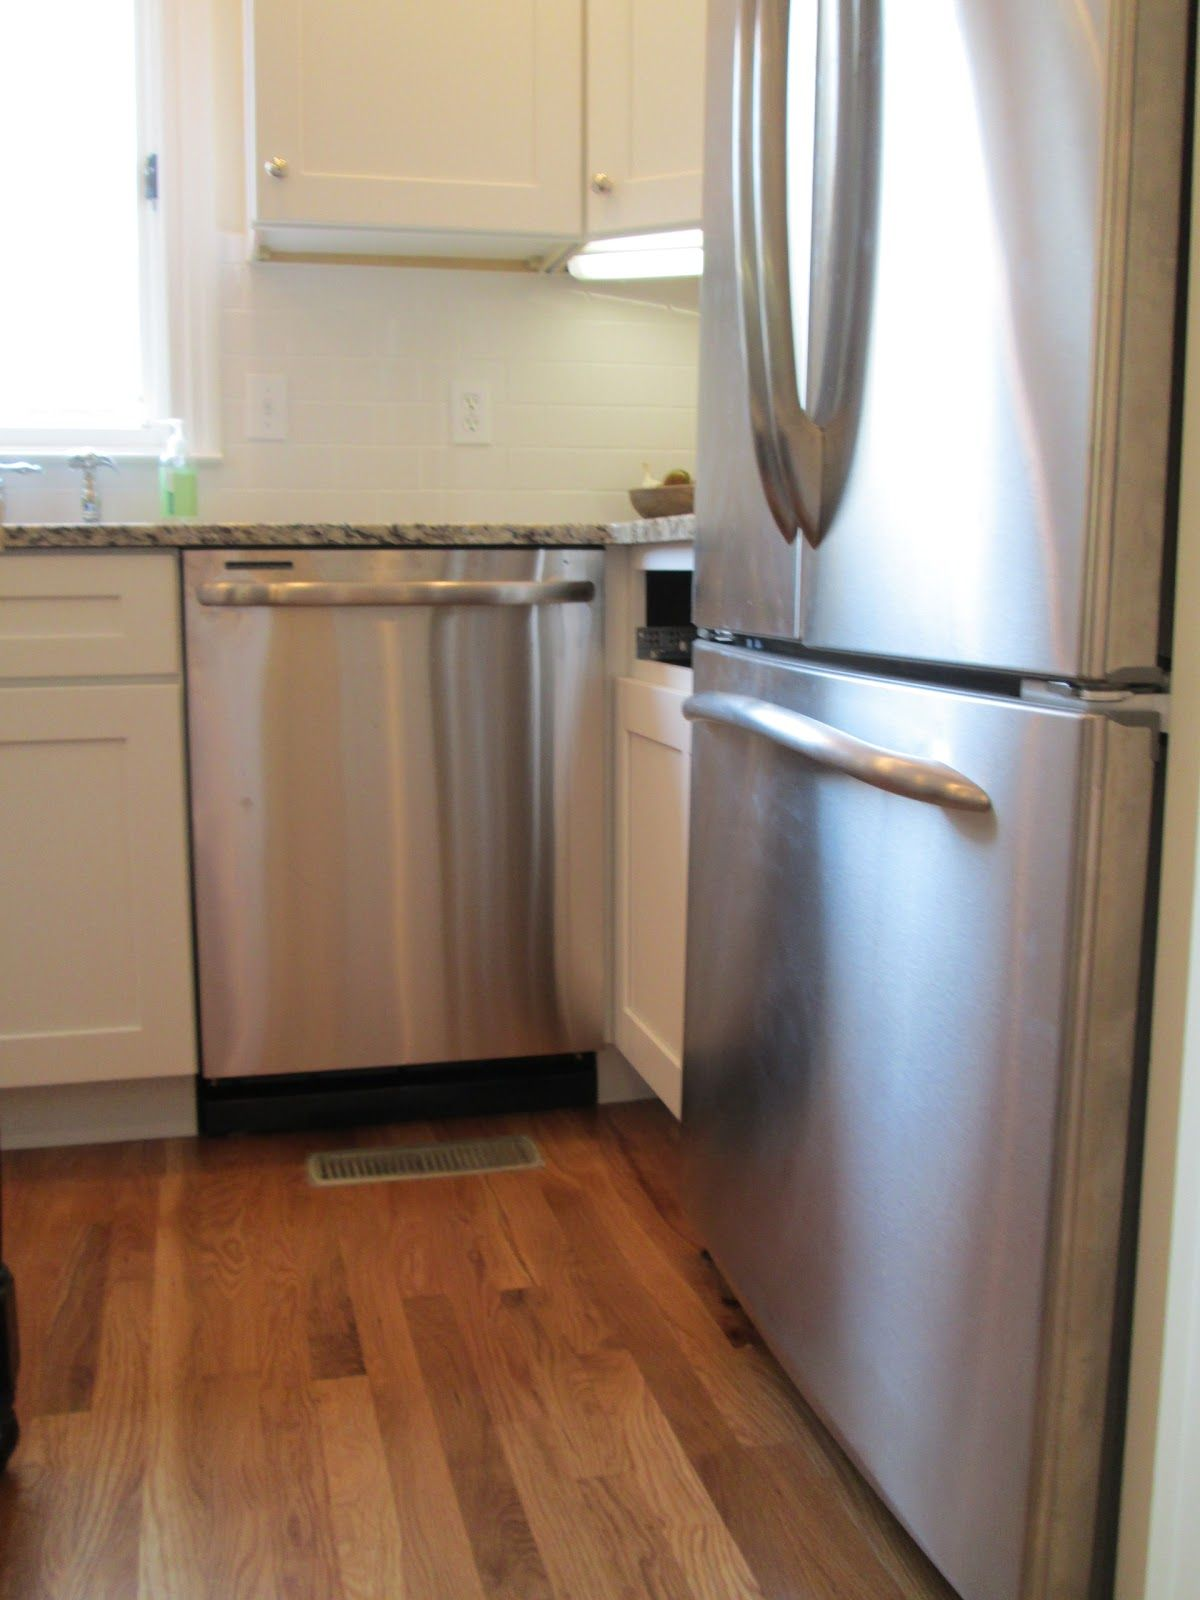 What I Dont Want To Happen Where The Drawer Wont Open On The Cabinet Adjacent The Dishwasher Kitchen Redo Kitchen French Door Refrigerator